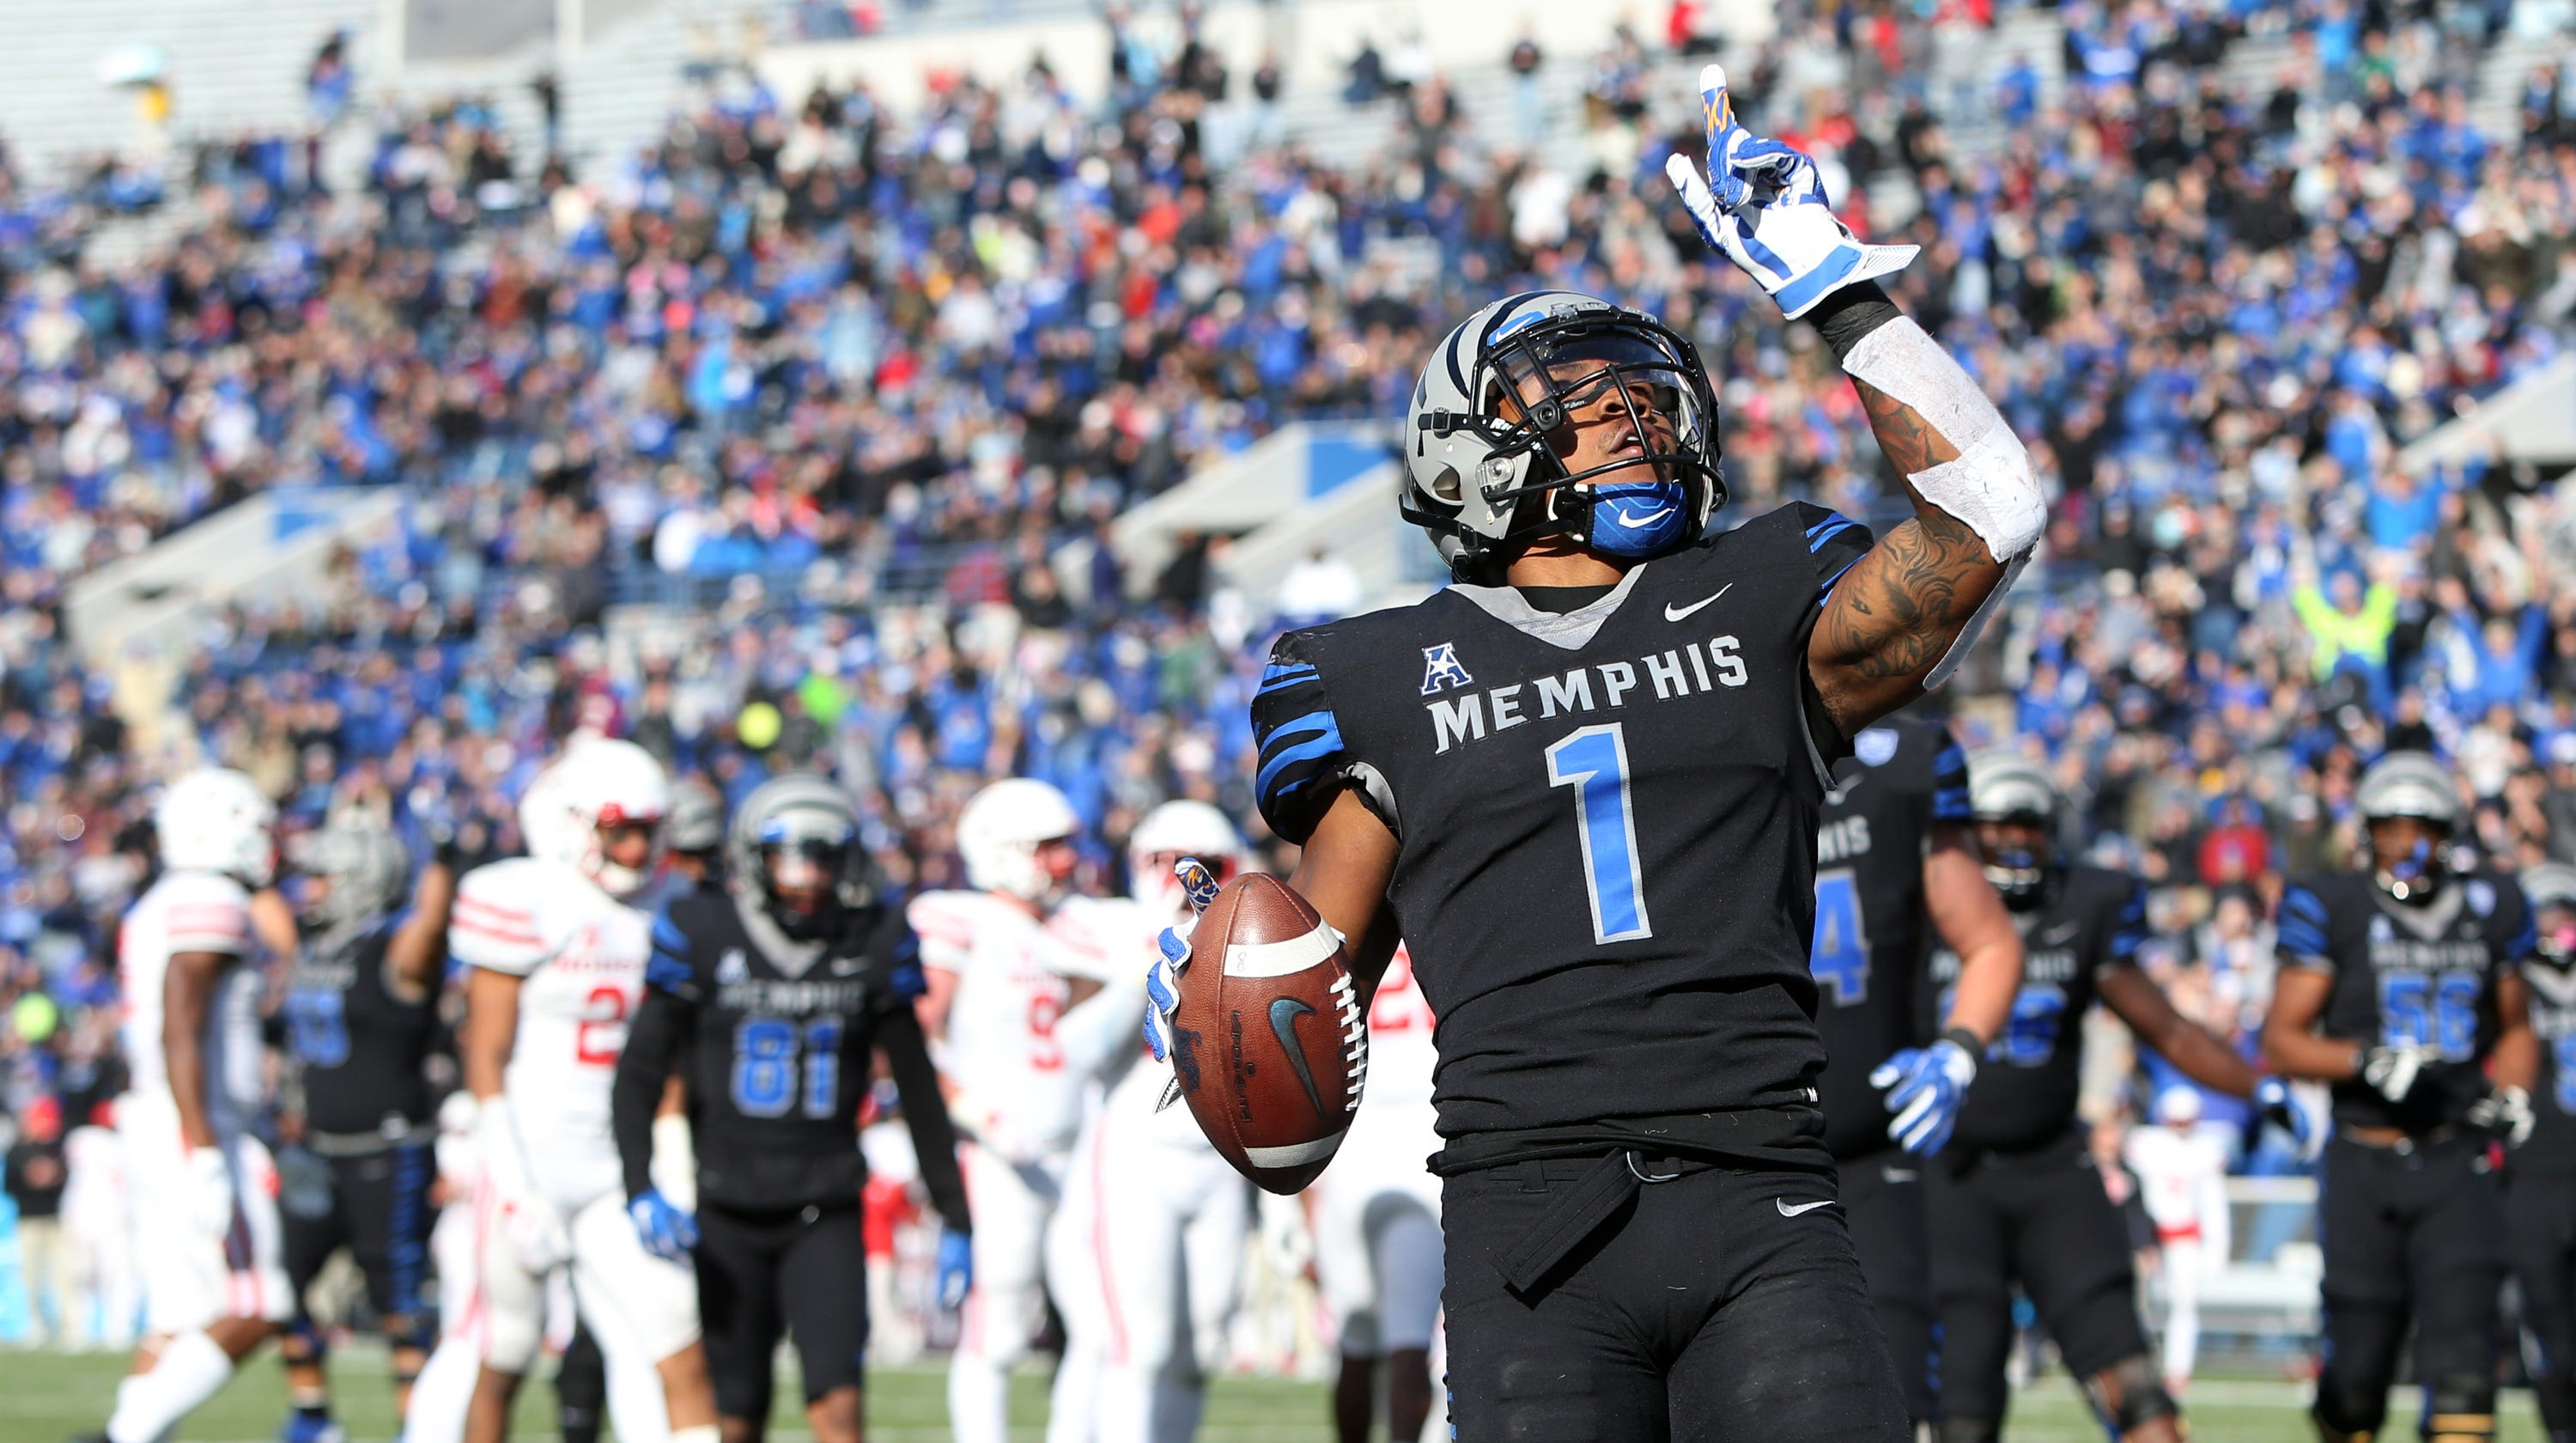 Memphis football s Tony Pollard declares for the NFL Draft 775ec195e16f